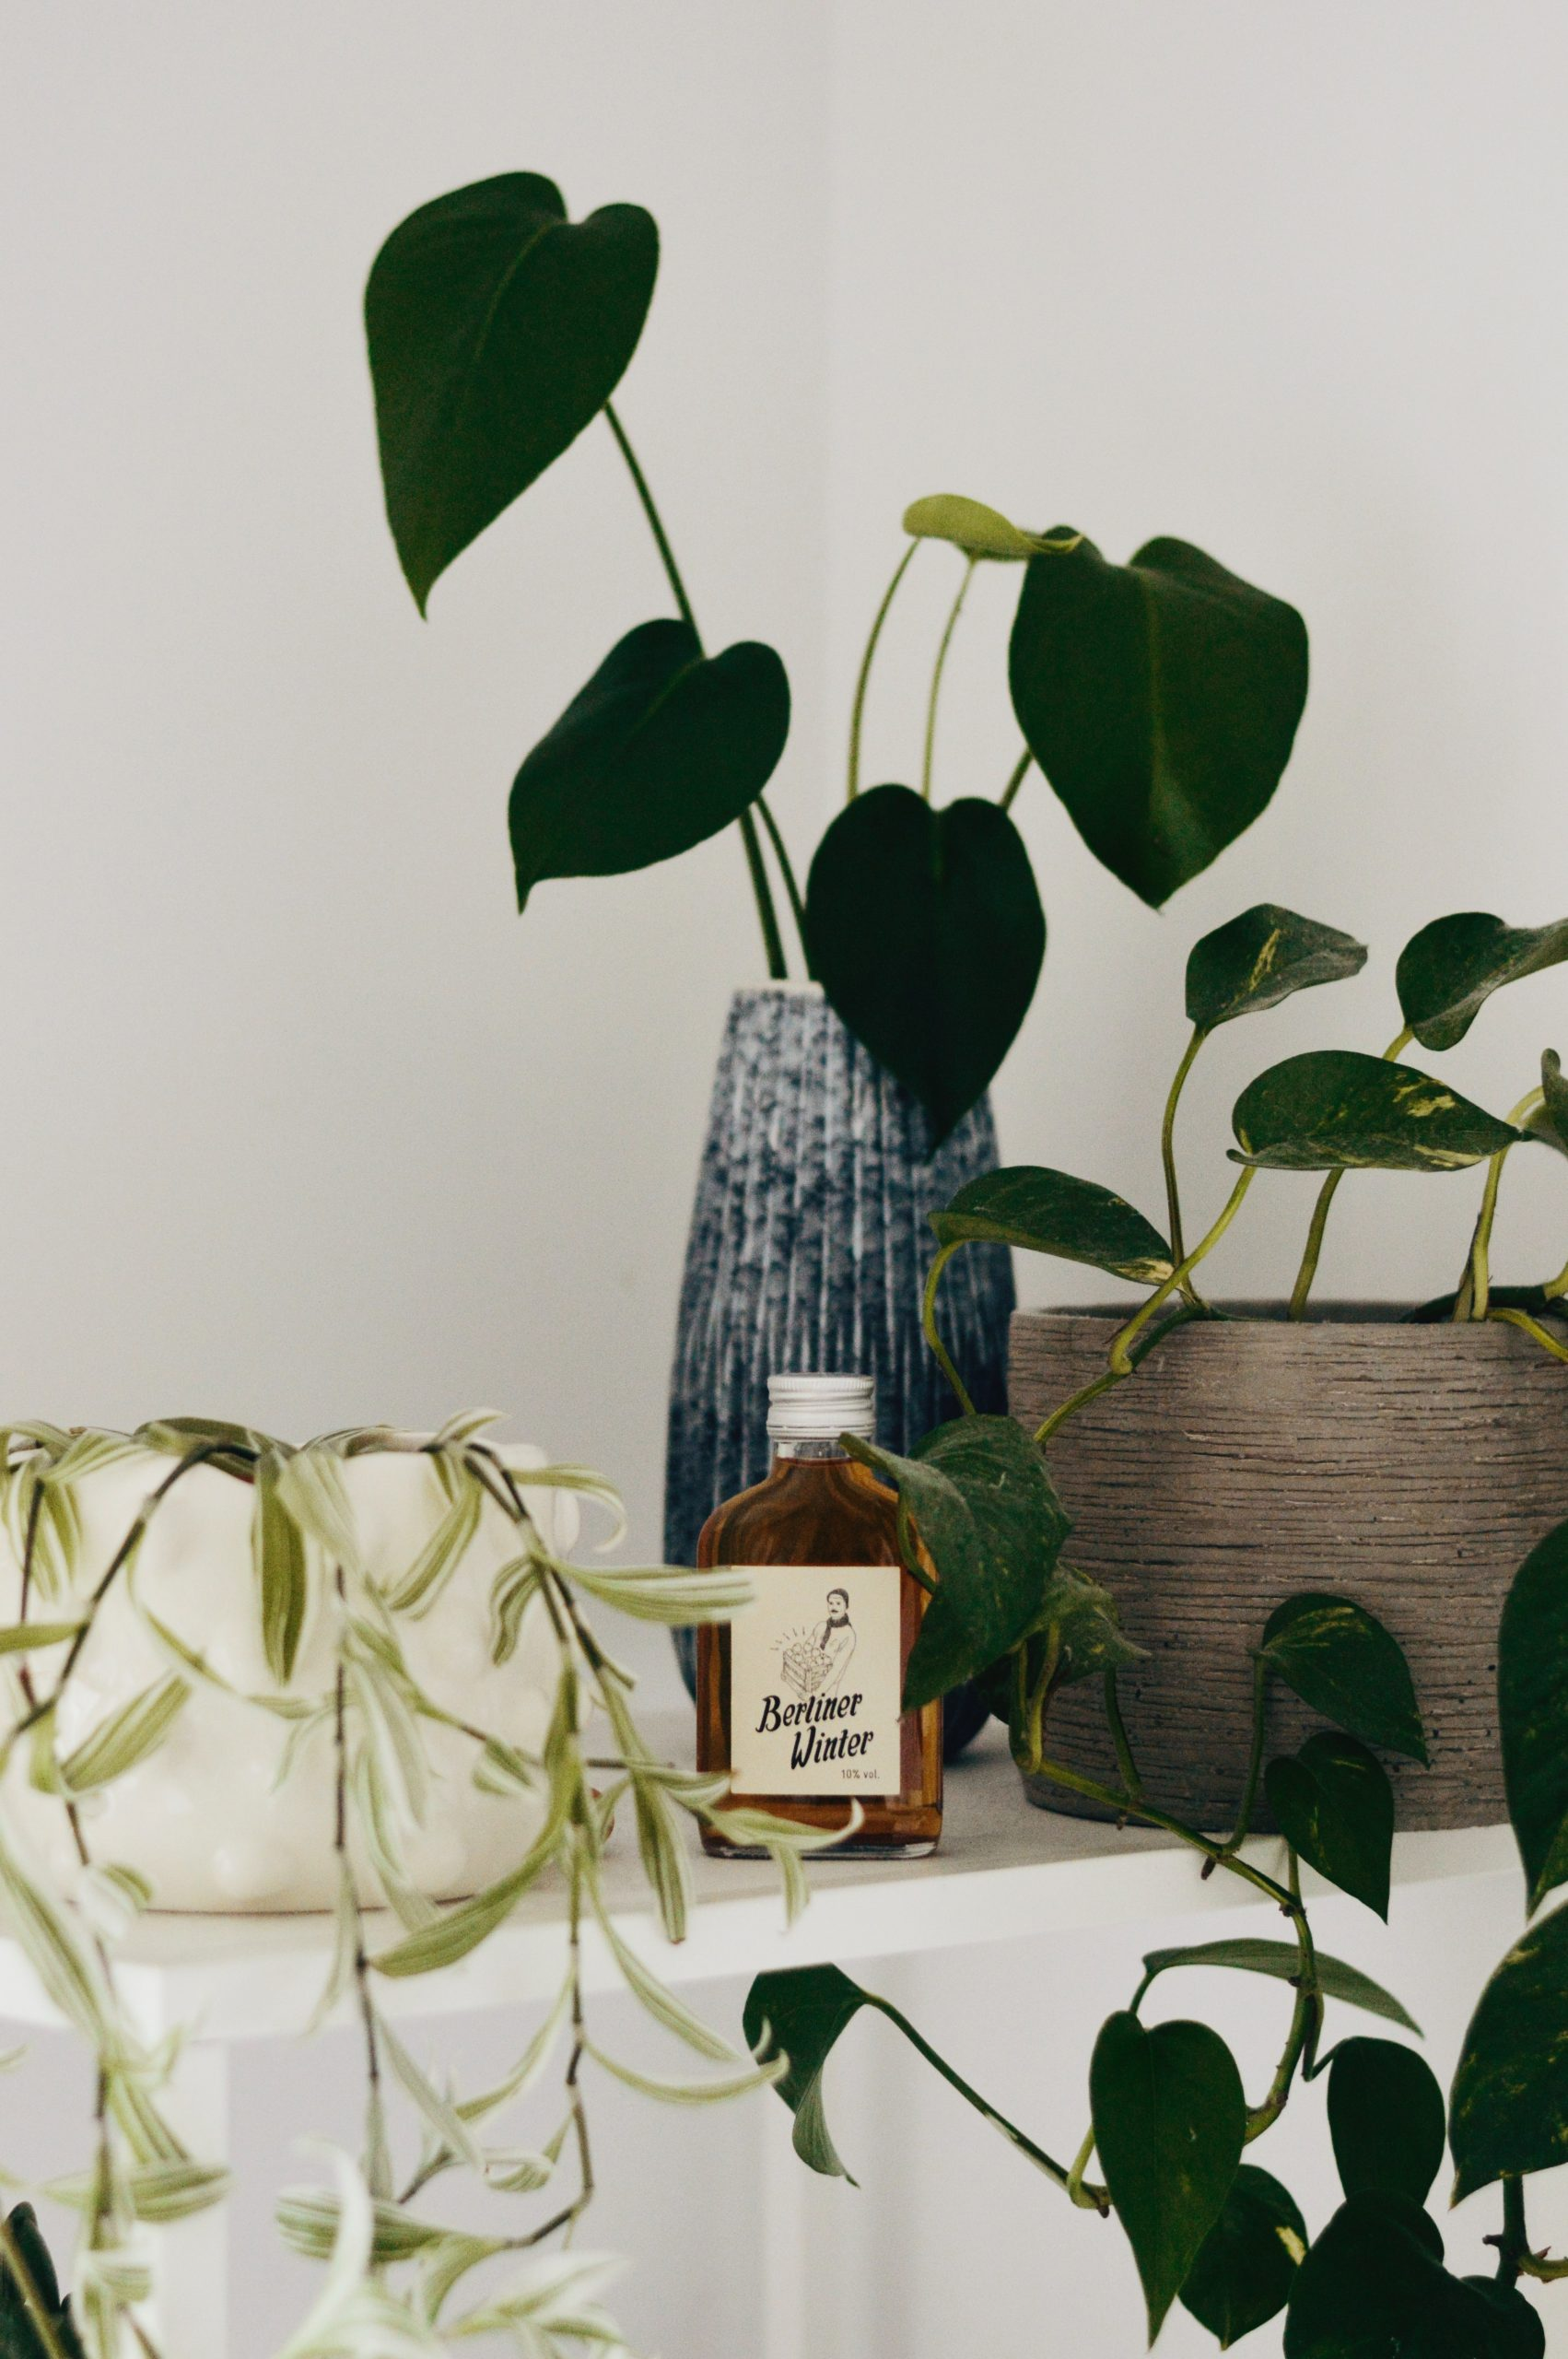 Add houseplants To Your Home For A Better Winter